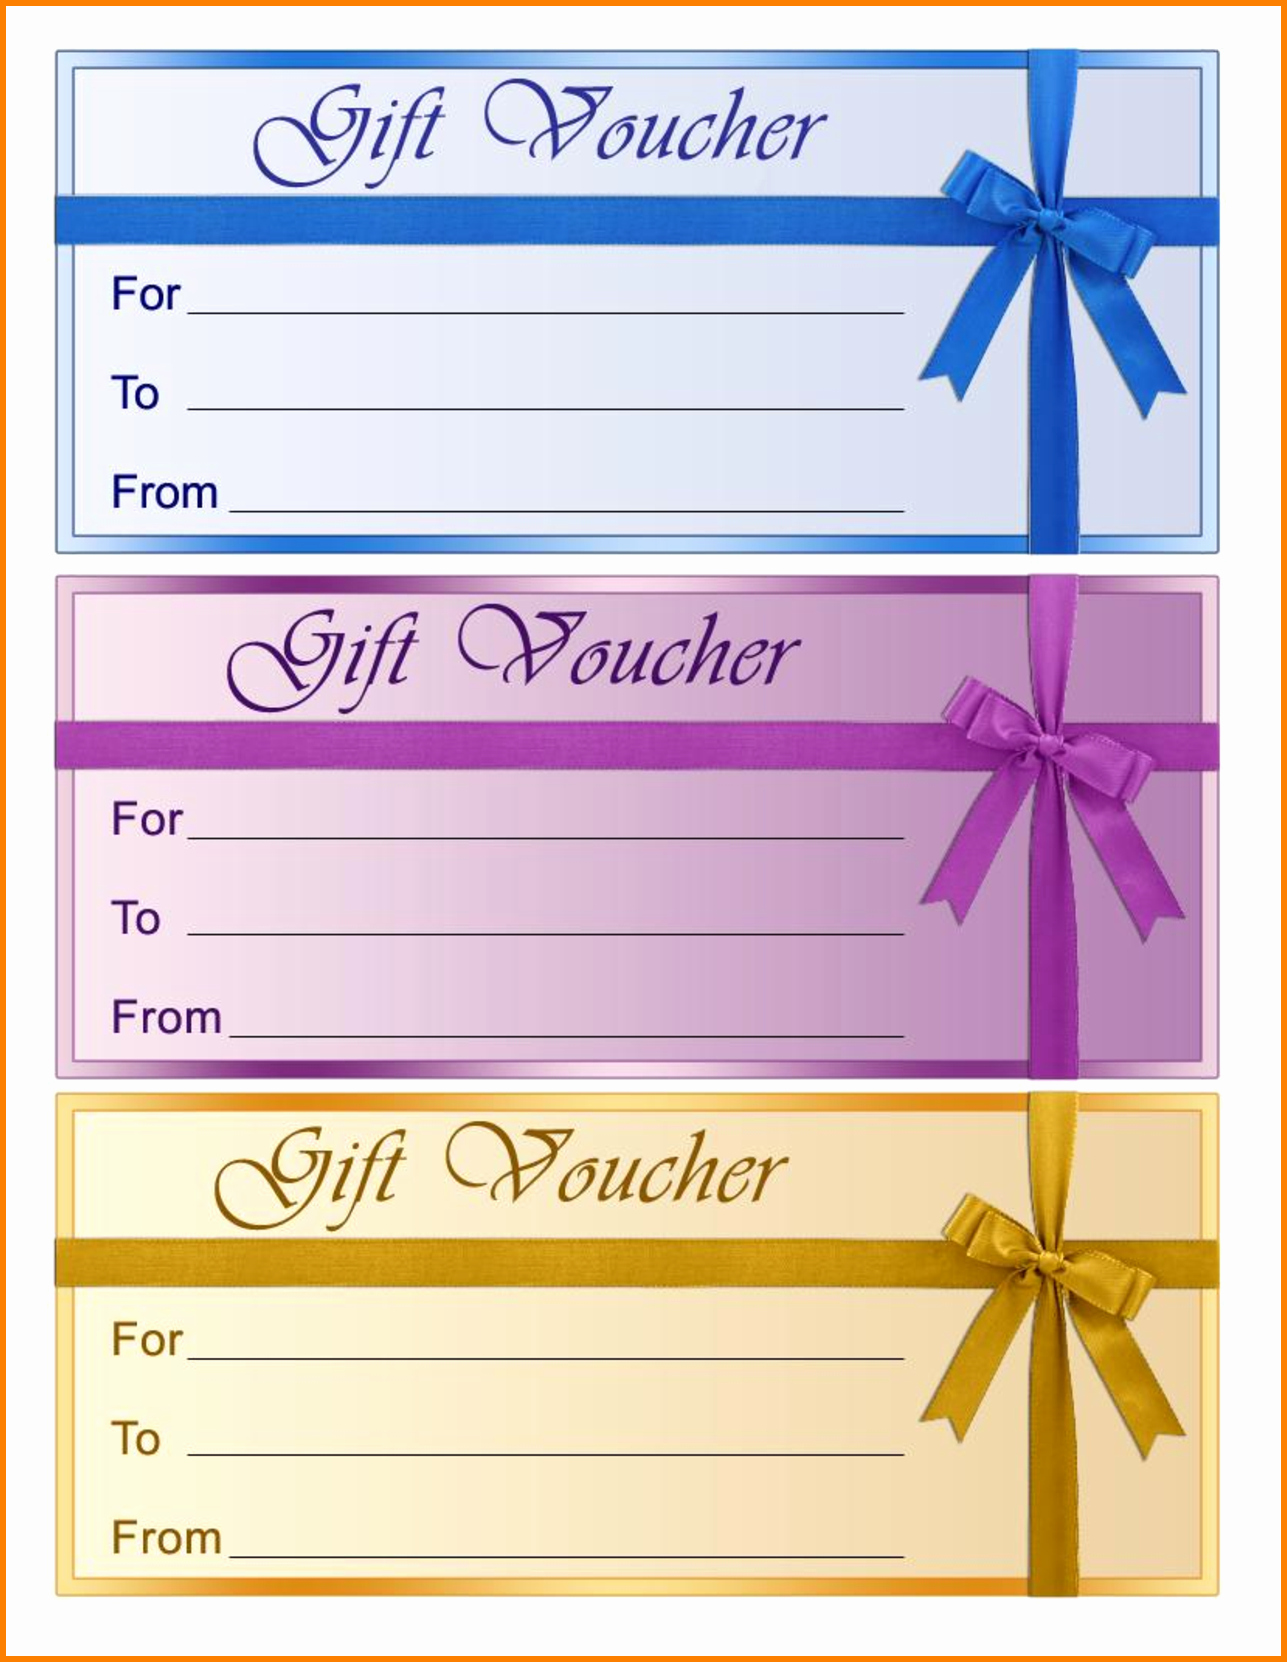 Gift Card Template Free Download Beautiful Perfect format Samples Of Gift Voucher and Certificate